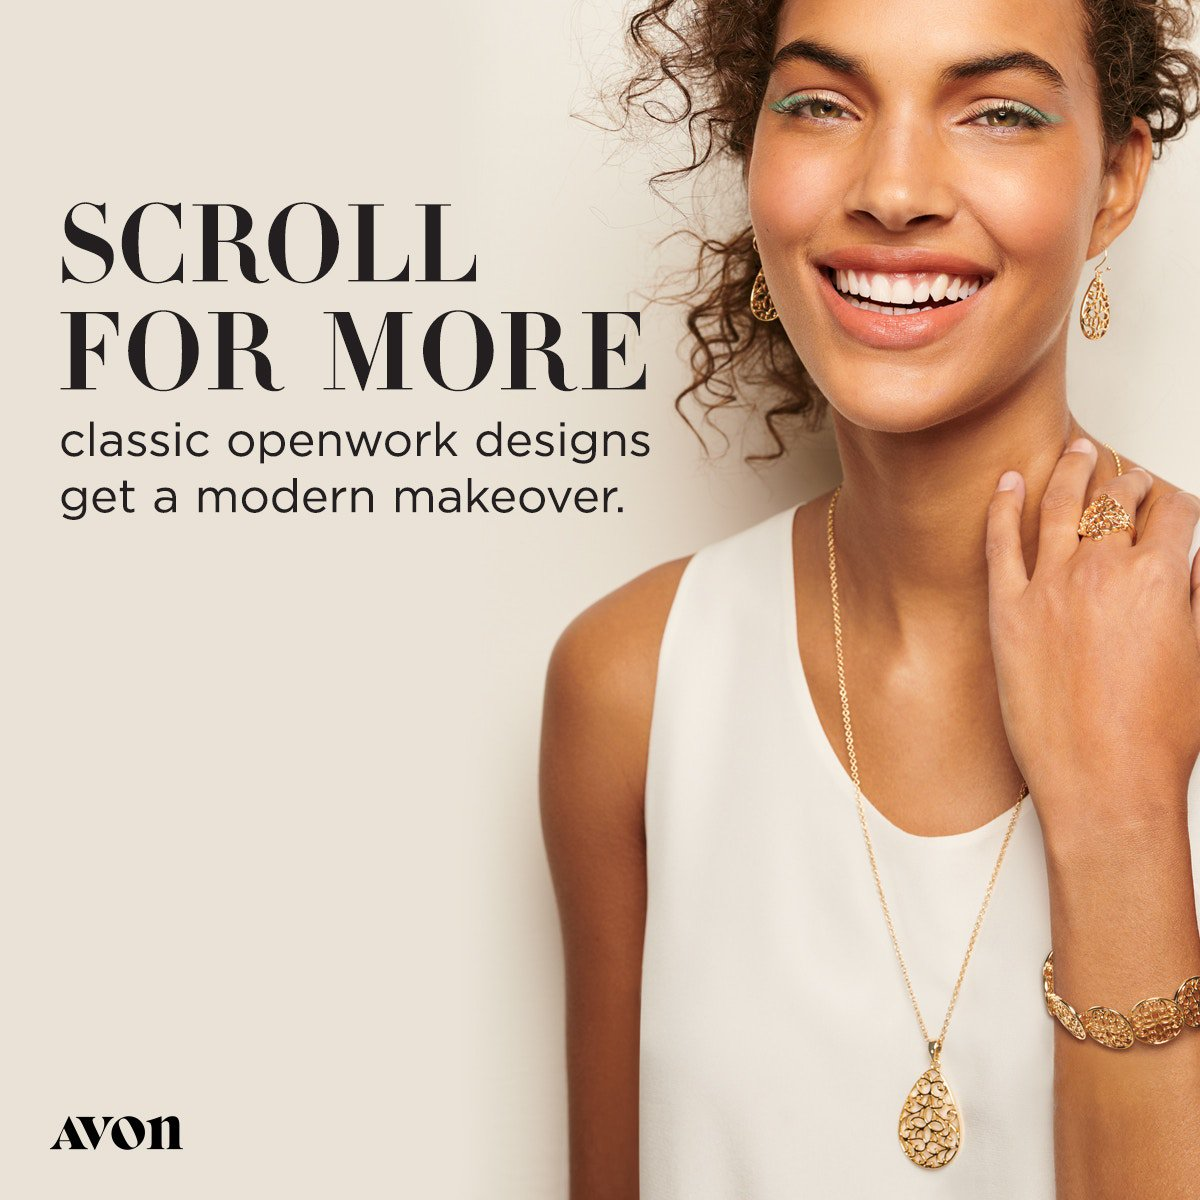 Our filigree jewelry set features a classic ornamental design. #Wednesday #WednesdayWisdom #HumpDay #Gold #Summer #Vacation #Beach #Pool #Beauty #Love #Hot #New #Classic #Sun #Atlanta #Georgia #Fashion #Jewelry SHOP: http://go.youravon.com/3dt75x BECOME A REP: http://go.youravon.com/3dt75w